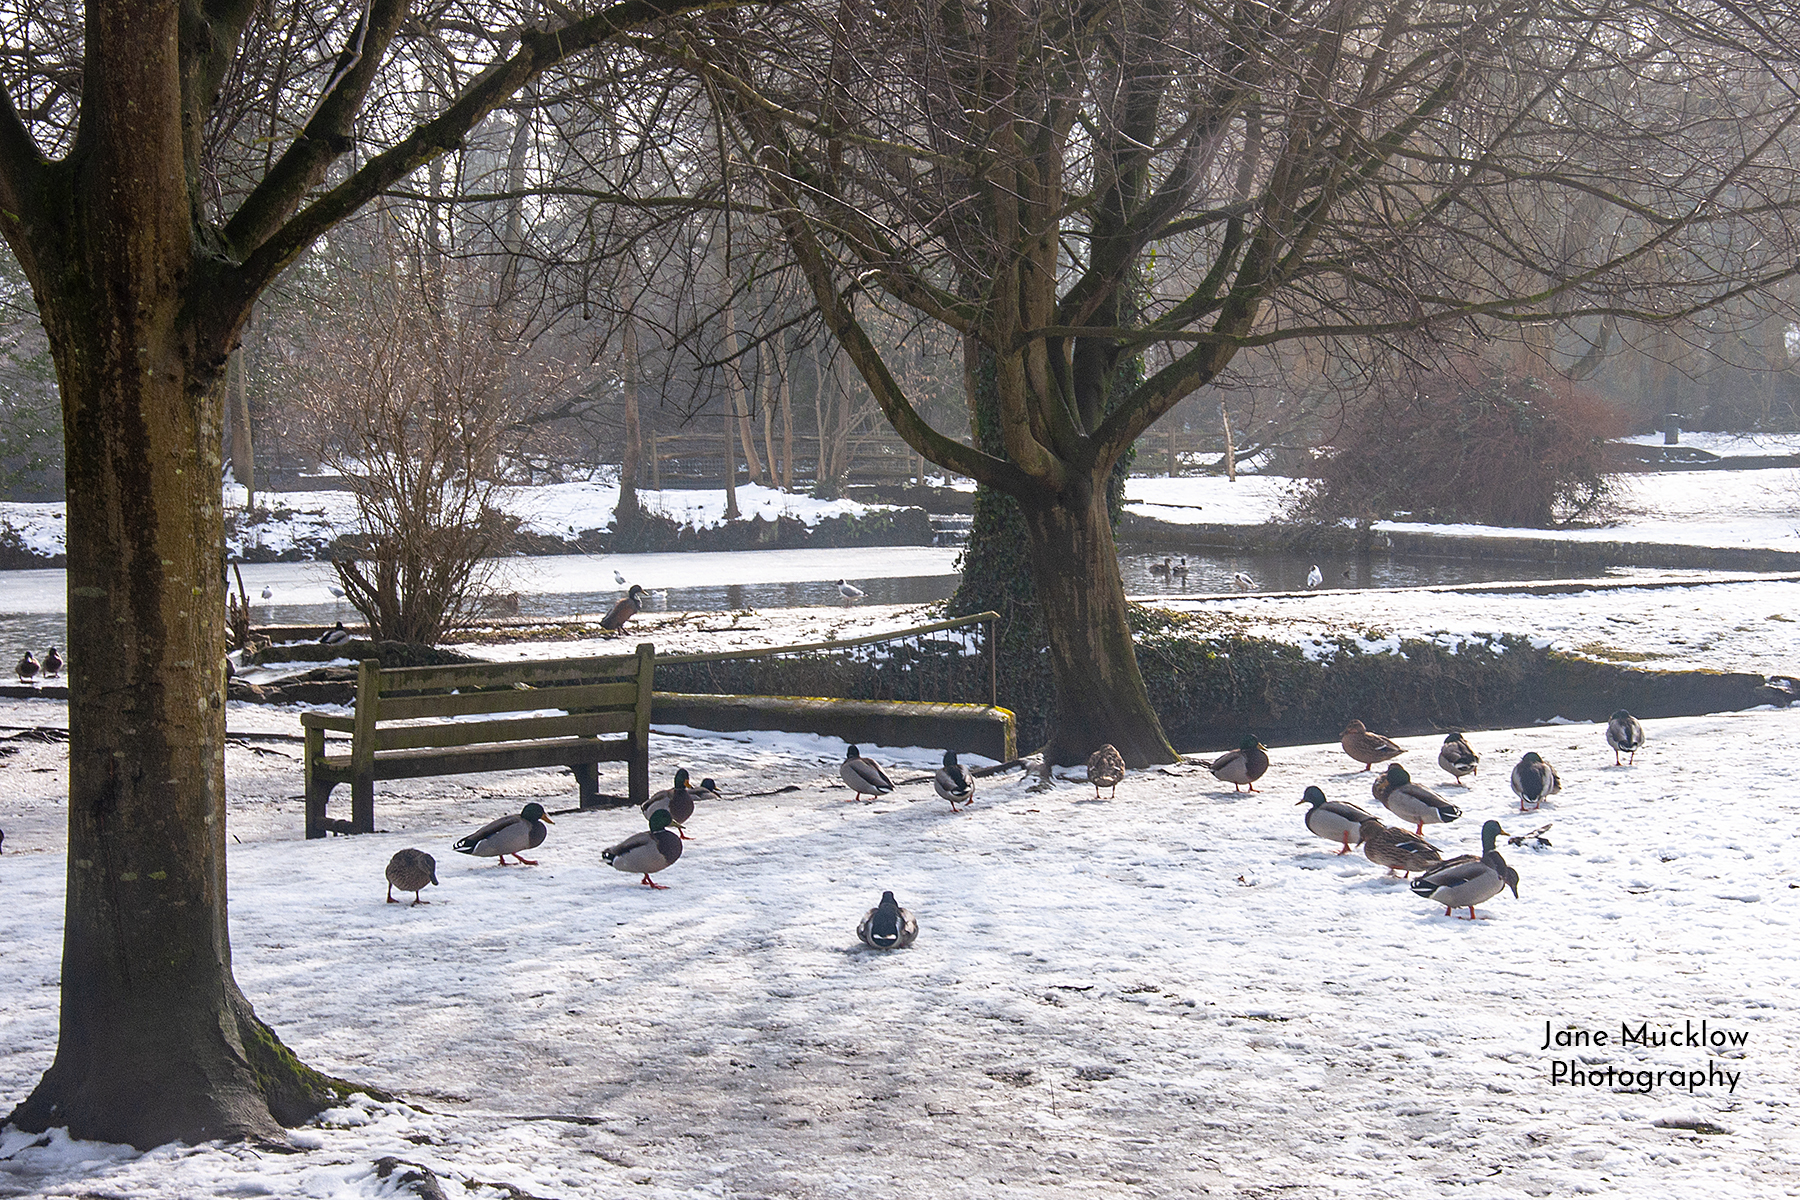 Photo by Jane Mucklow of Bradbourne Lakes in the snow, Sevenoaks, Kent.